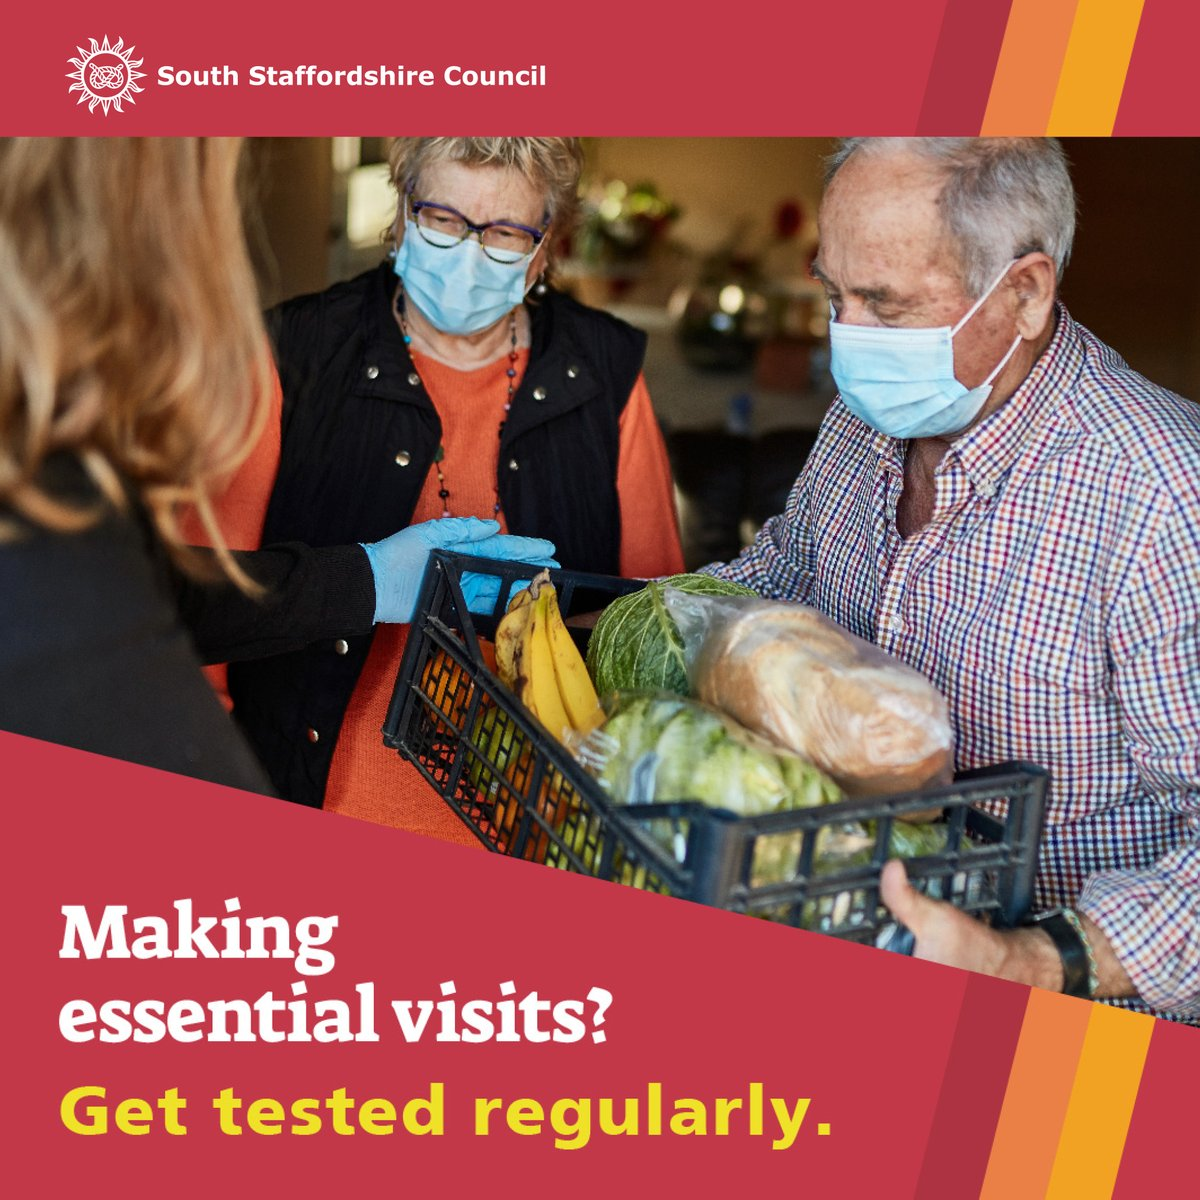 Getting tested if you don't have symptoms is free and easy to do – you can do it online in a couple of clicks. This one simple act can save lives. Don't take that risk with your loved ones, book a rapid test today.  #doingourbit #letsgettested